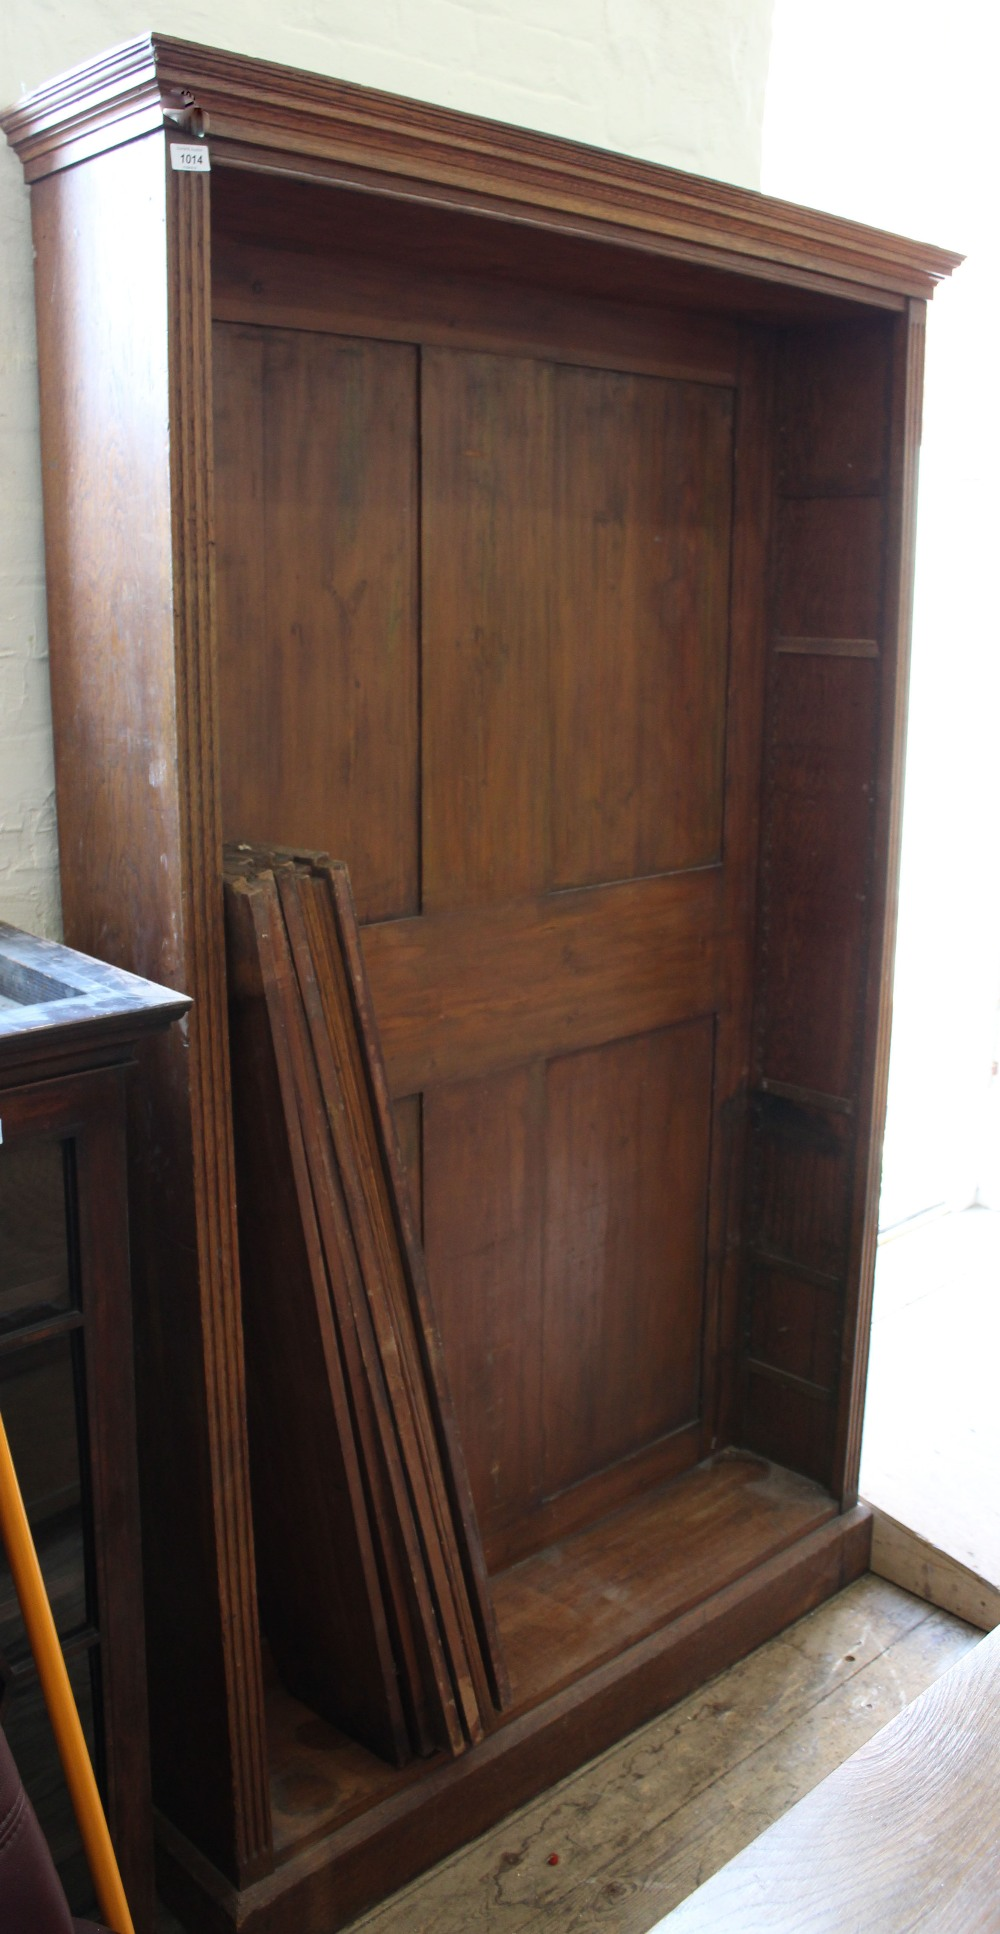 Lot 1014 - A substantial oak and pine bookcase